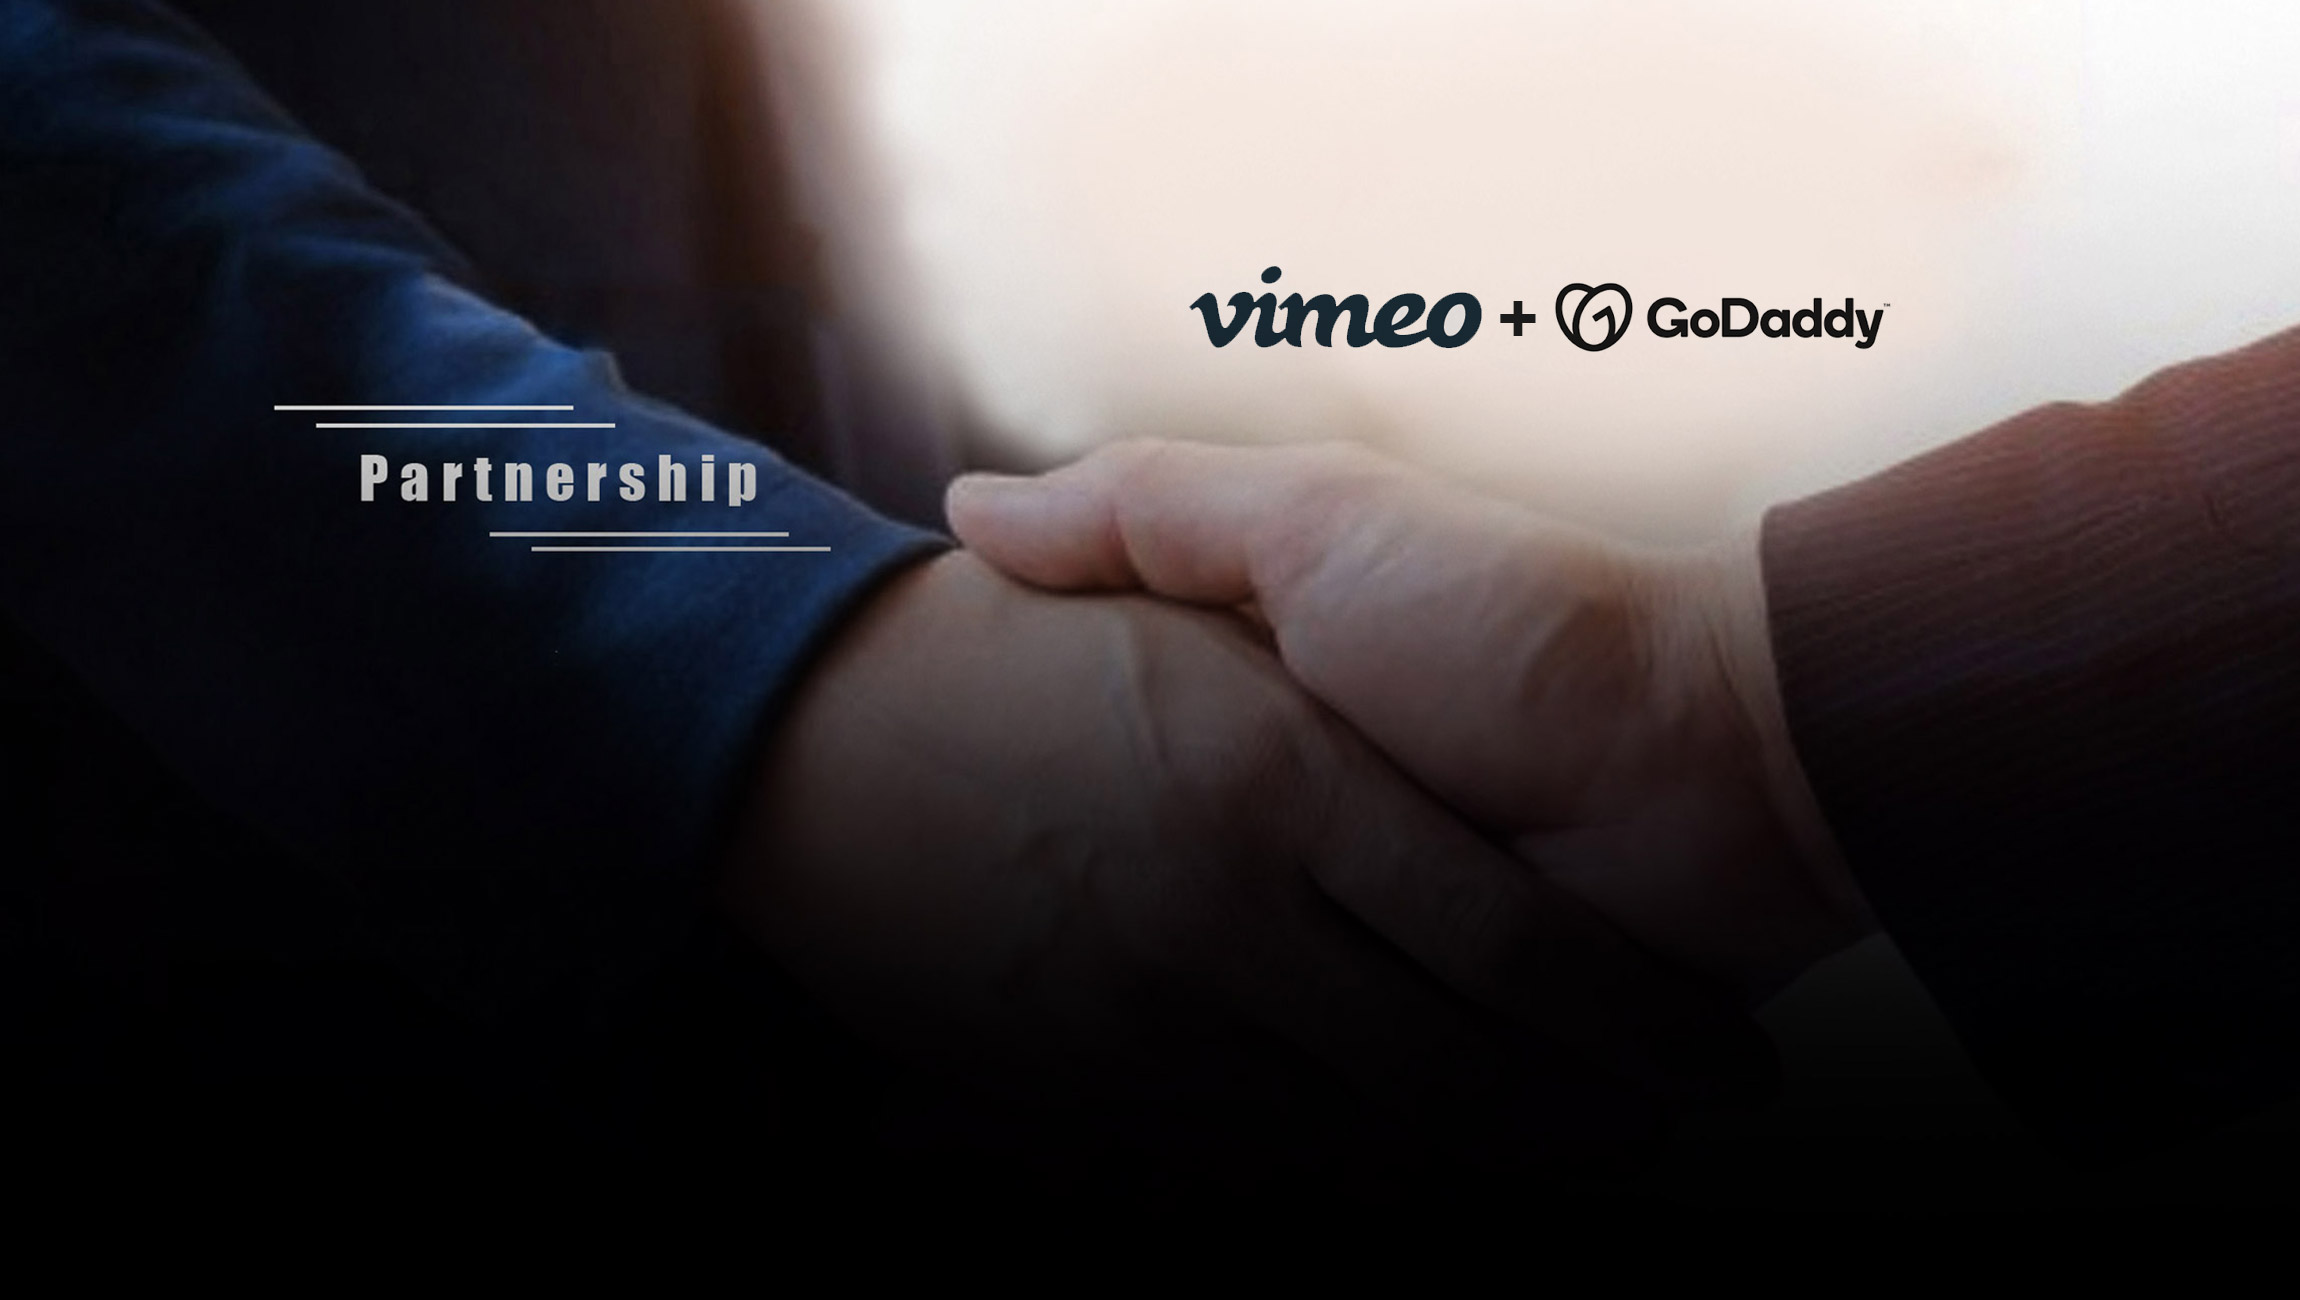 Vimeo Announces Partnership With GoDaddy To Power Video For Entrepreneurs Globally